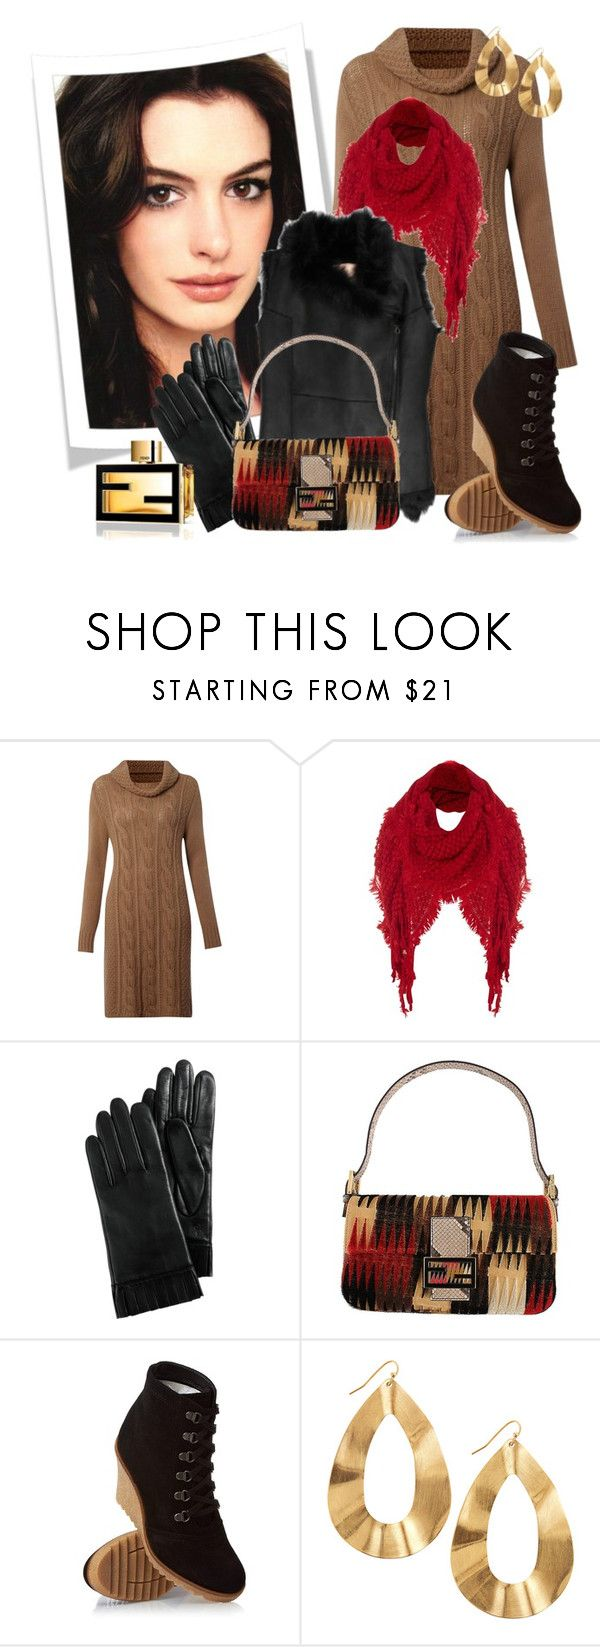 """Untitled #910"" by allib4sho ❤ liked on Polyvore featuring Weekend Max Mara, Jane Norman, Cole Haan, Fendi, ESPRIT, Panacea, fendi, studded scarves, gloves and handbag"